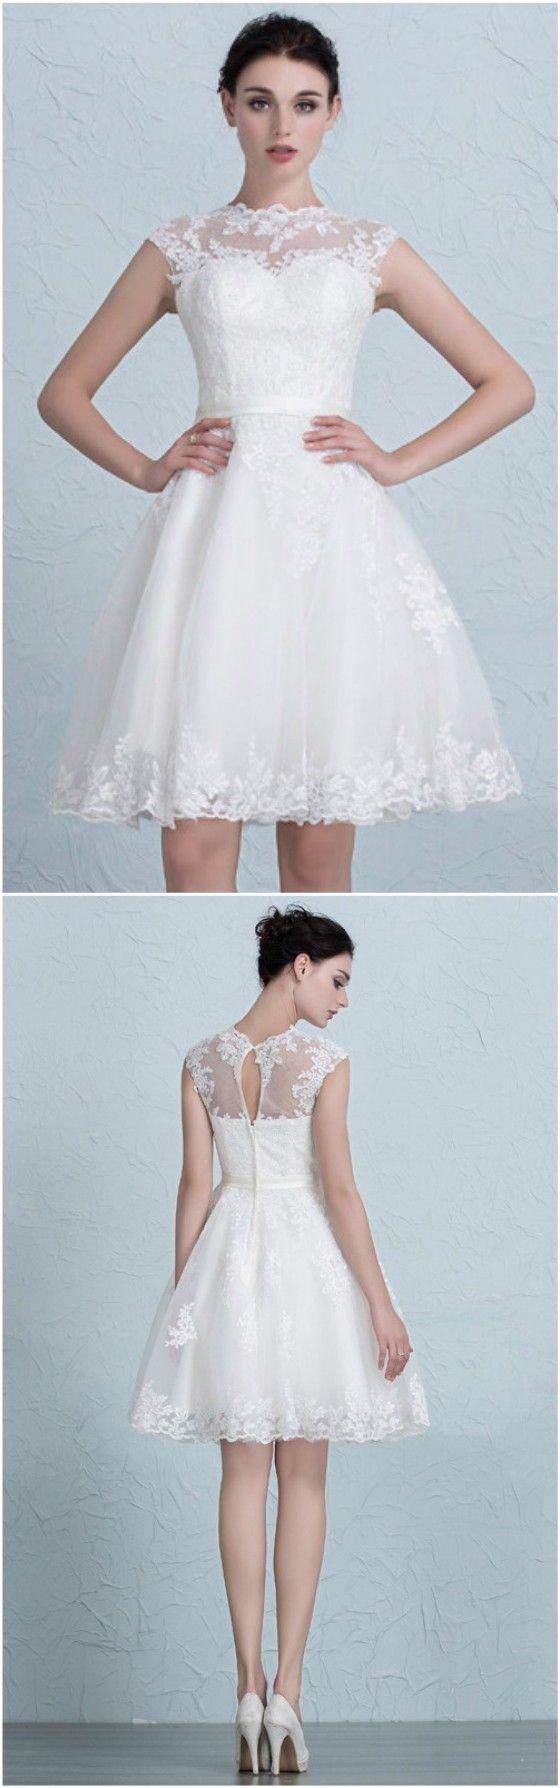 Lace A Line Short Wedding Dresses Reception Tulle Style With ...